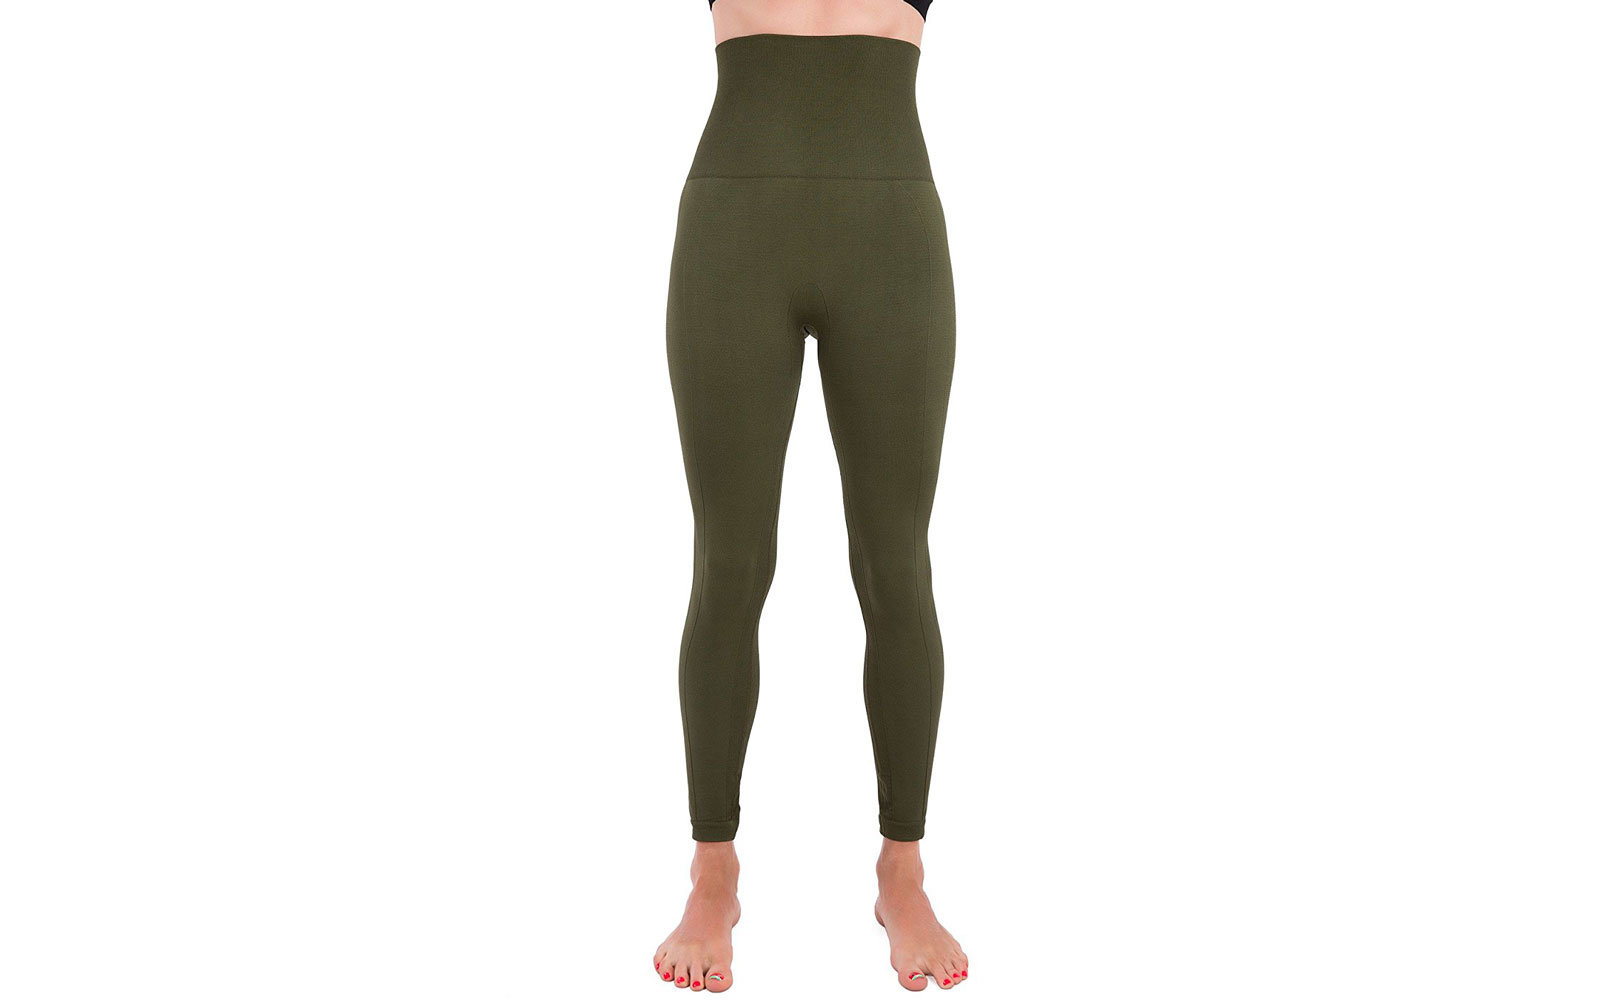 c9bee2069b0794 Homma High-waist Leggings. homma womens compression leggings. Courtesy of  Amazon